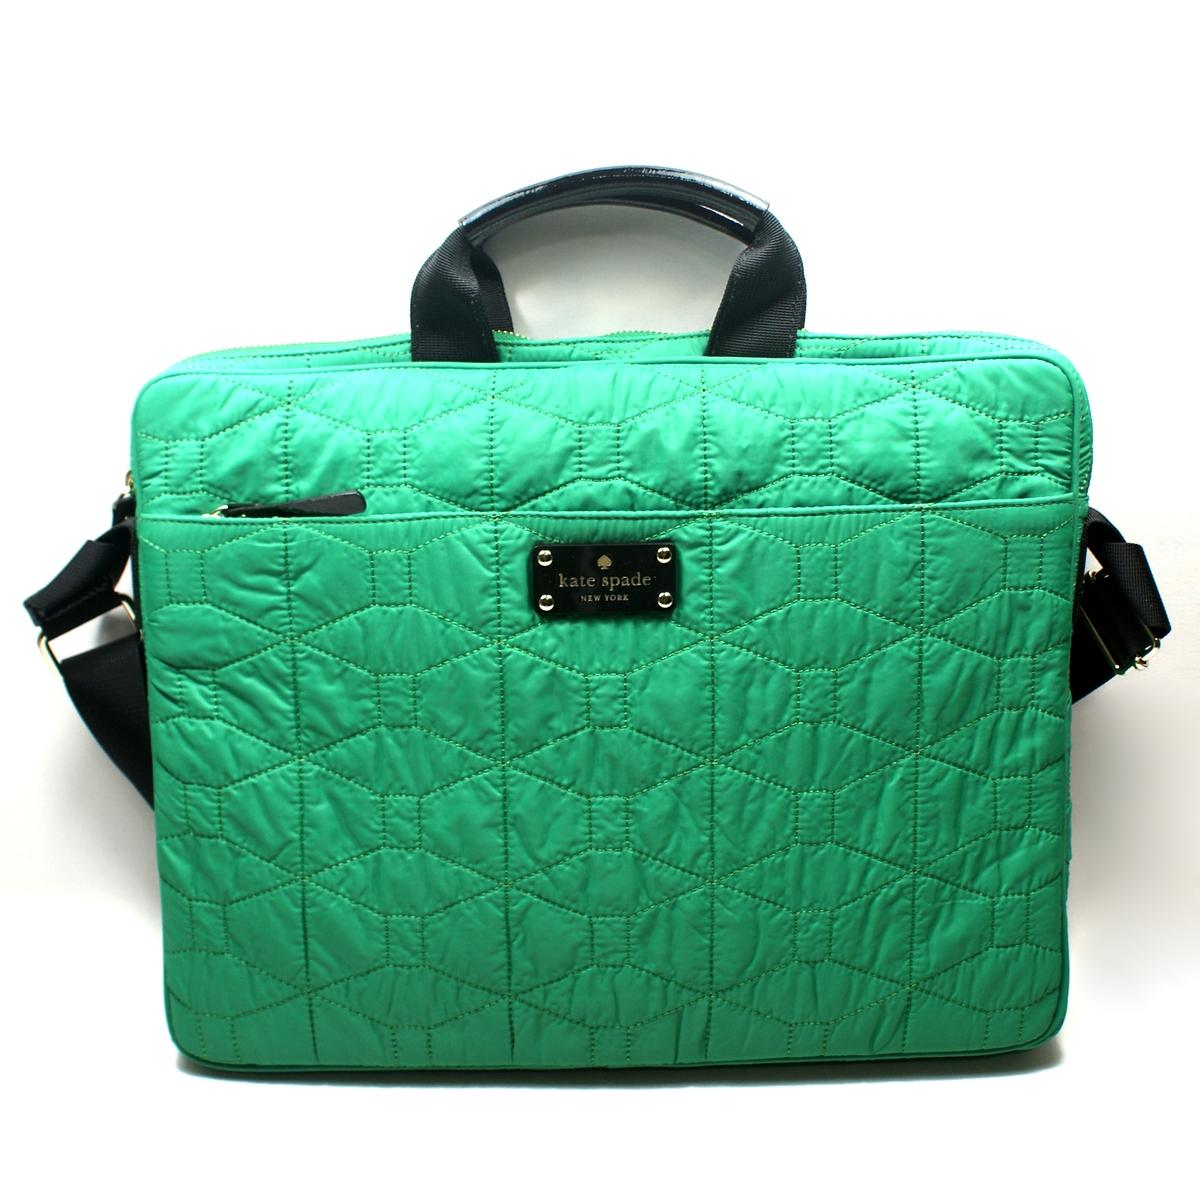 Kate Spade Chad 15 Signature Spade Quilted Emerald